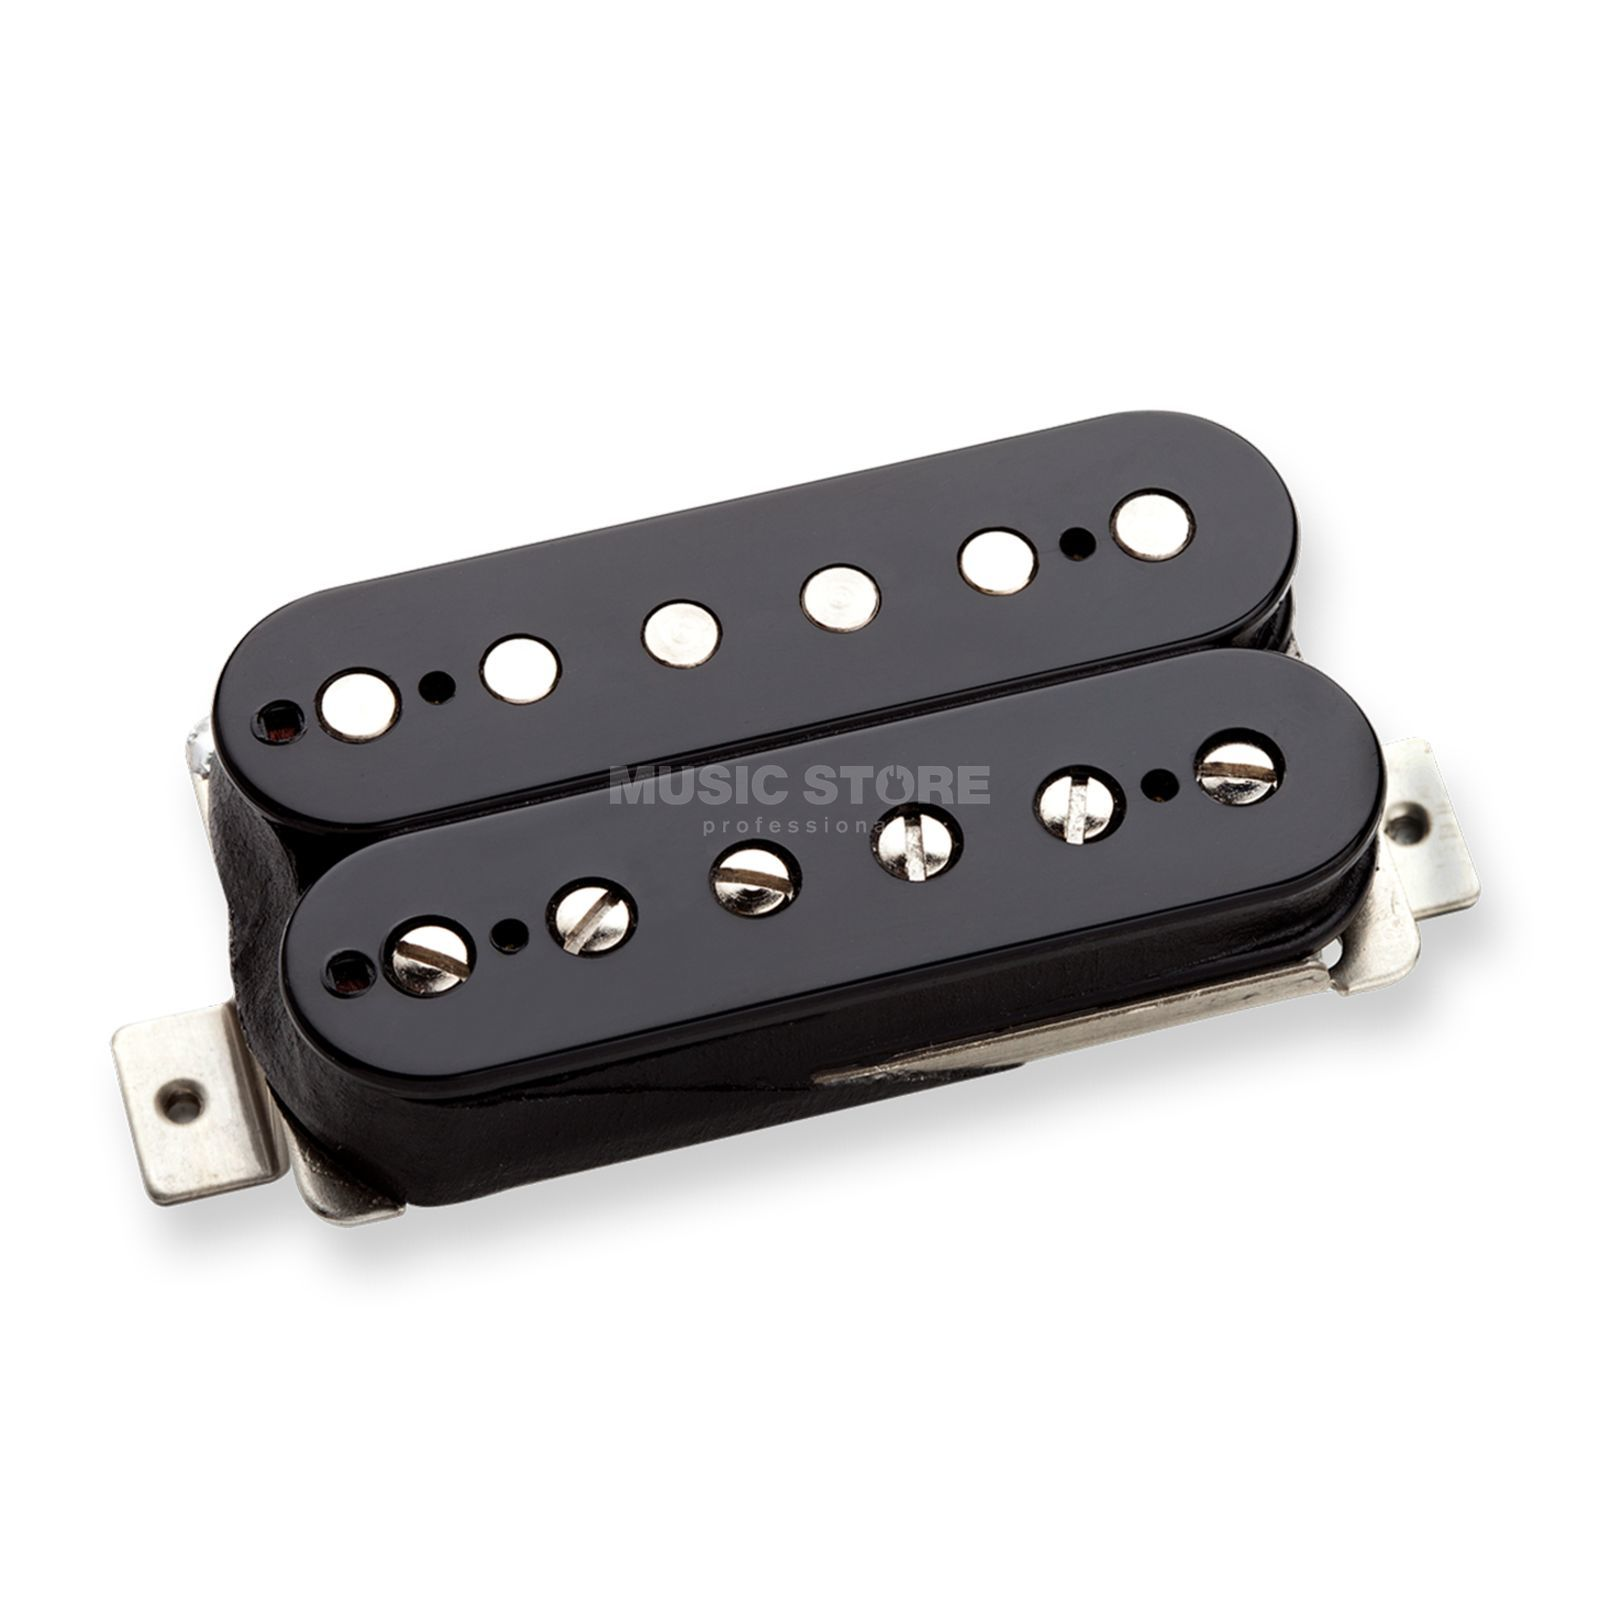 Seymour Duncan SH-1B 2C BLK '59 Model Black Bridge Humbucker Produktbild